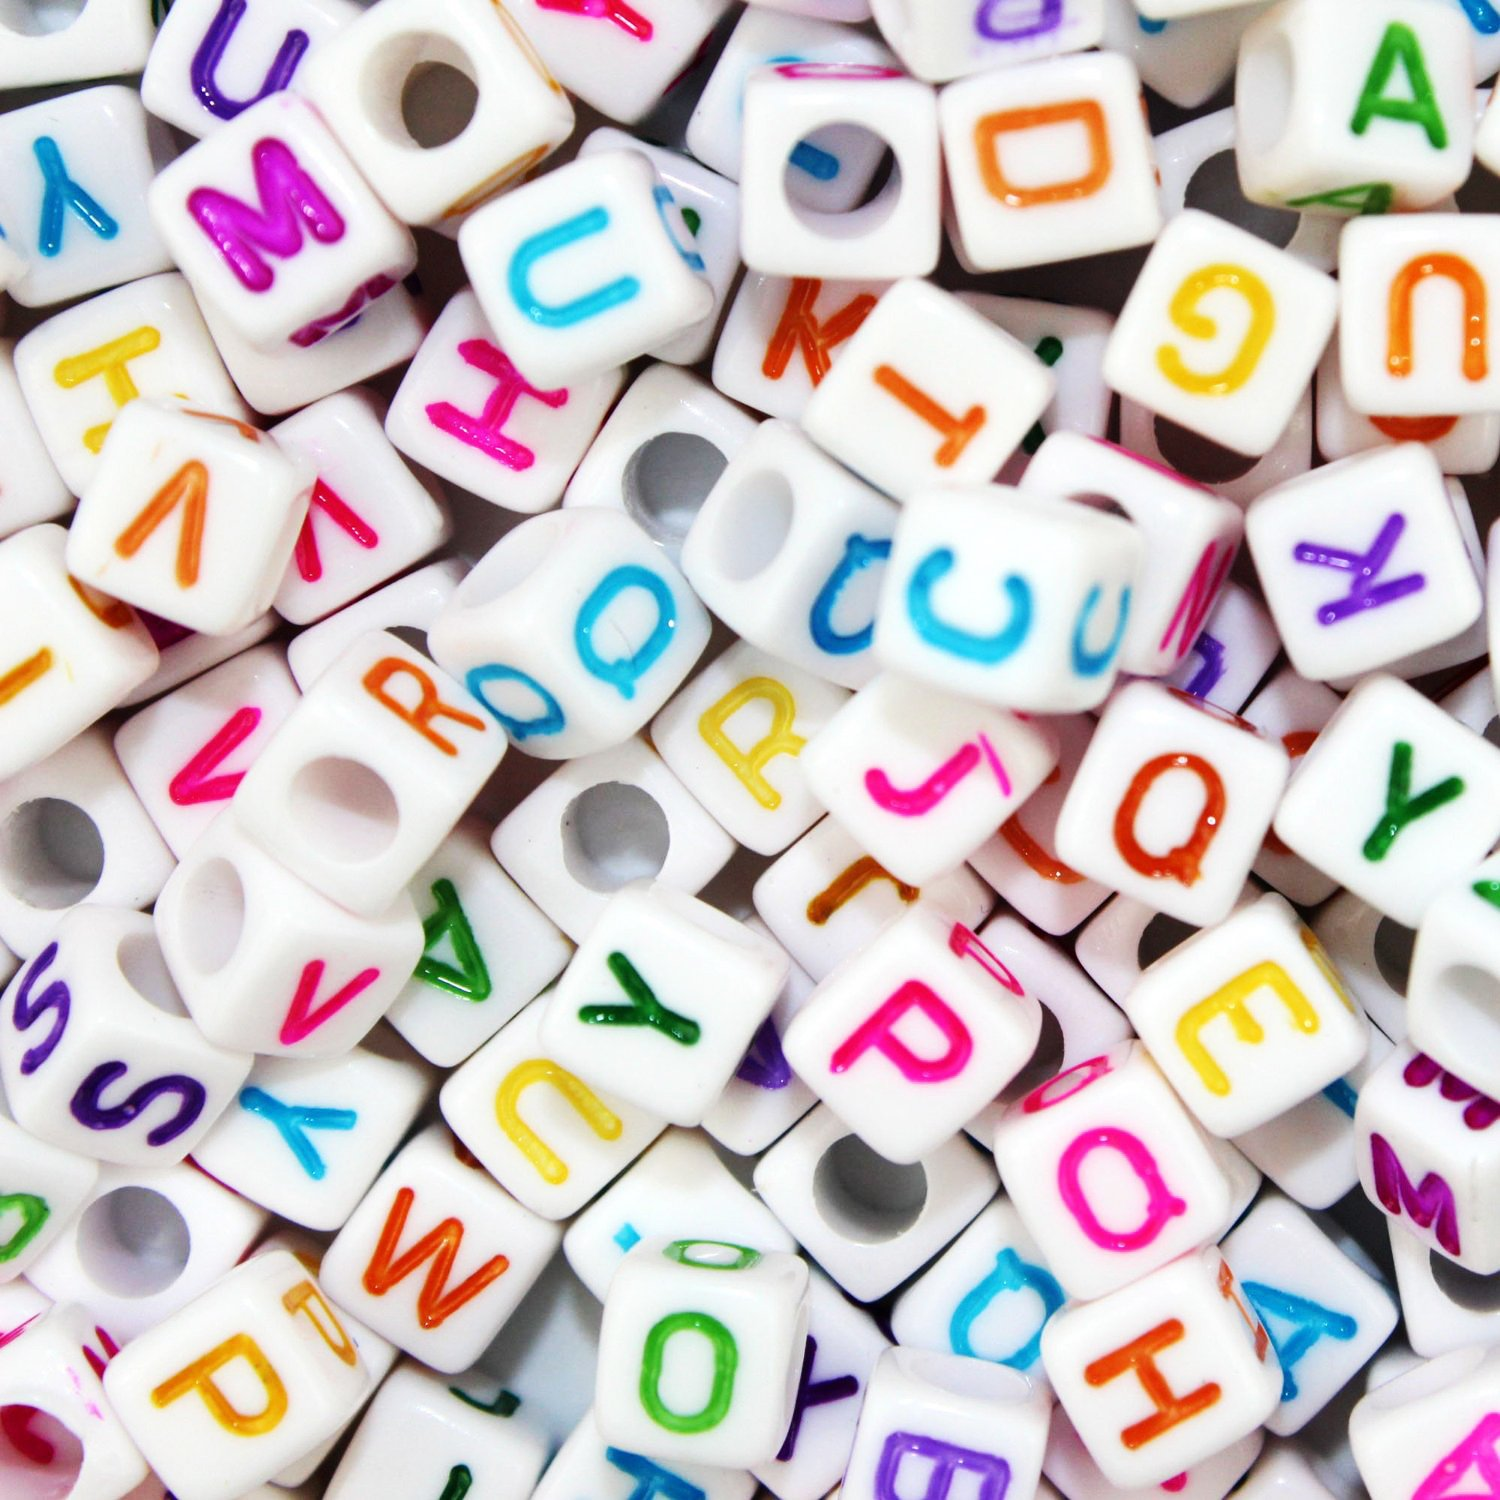 JPSOR 800 Pcs Letter Beads Alphabet Beads for Jewelry Making with Colorful Letters for Kids DIY Bracelets, Necklaces, Children's Educational Toys, Handmade Gift (White Beads with Colorful Letters)